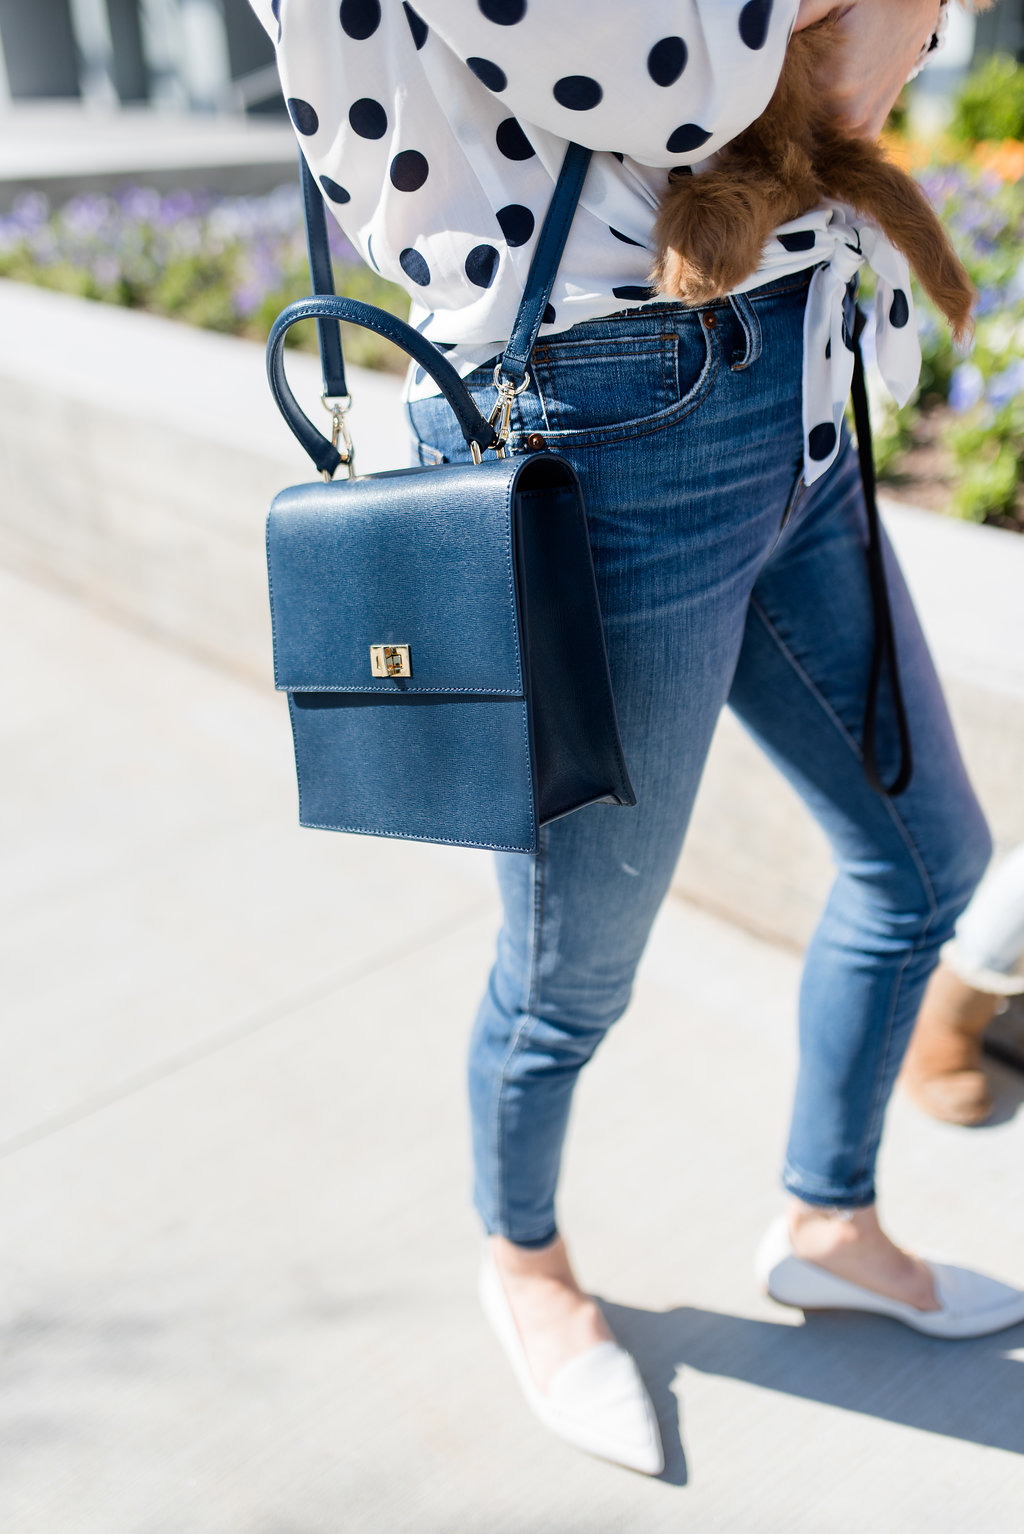 navy cross body bag with jeans and polka dot top